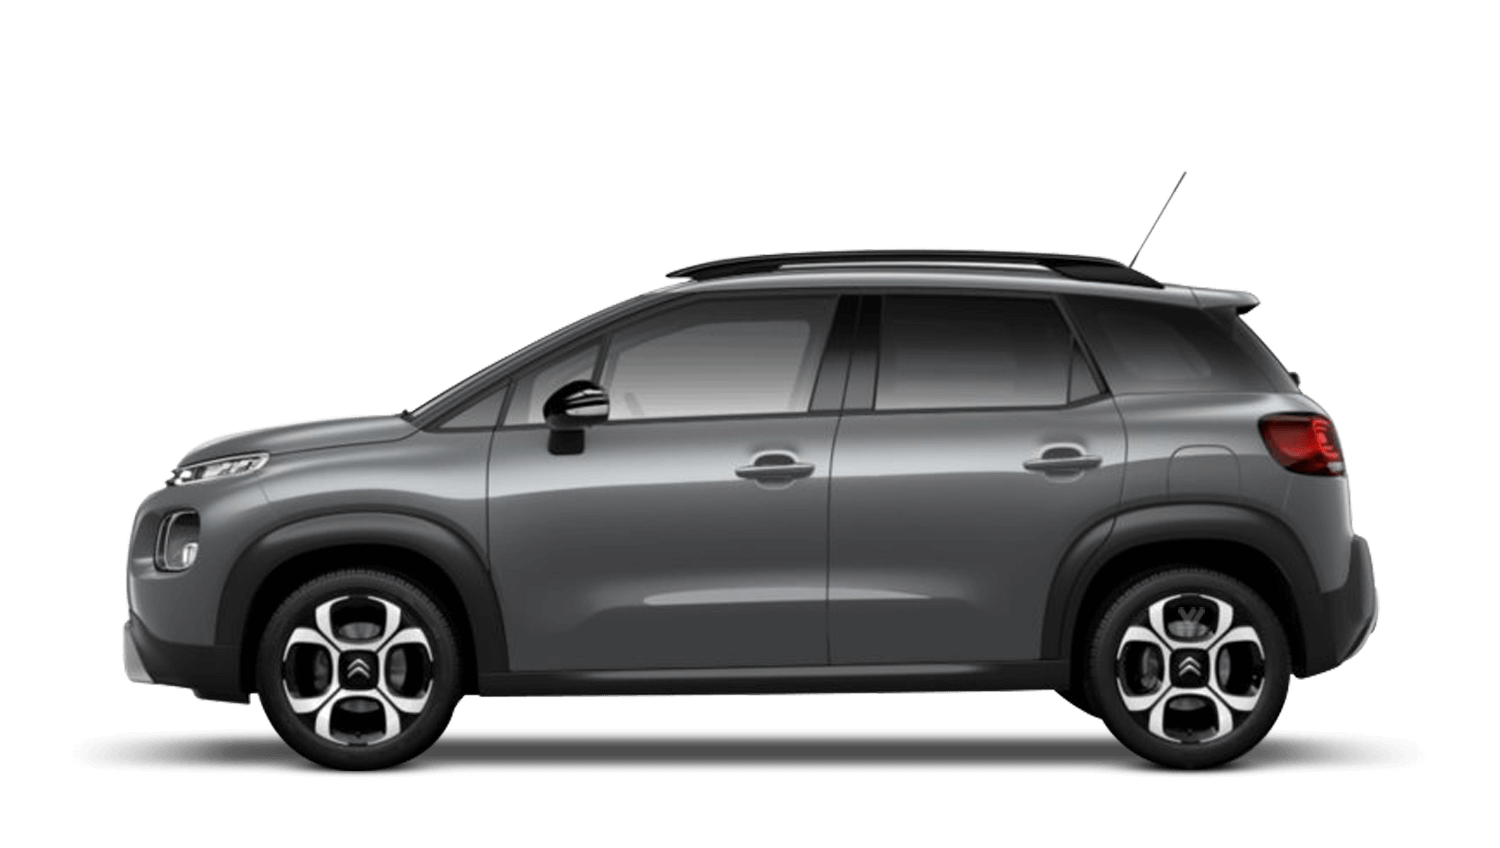 C3 Aircross SUV Leasing Offers